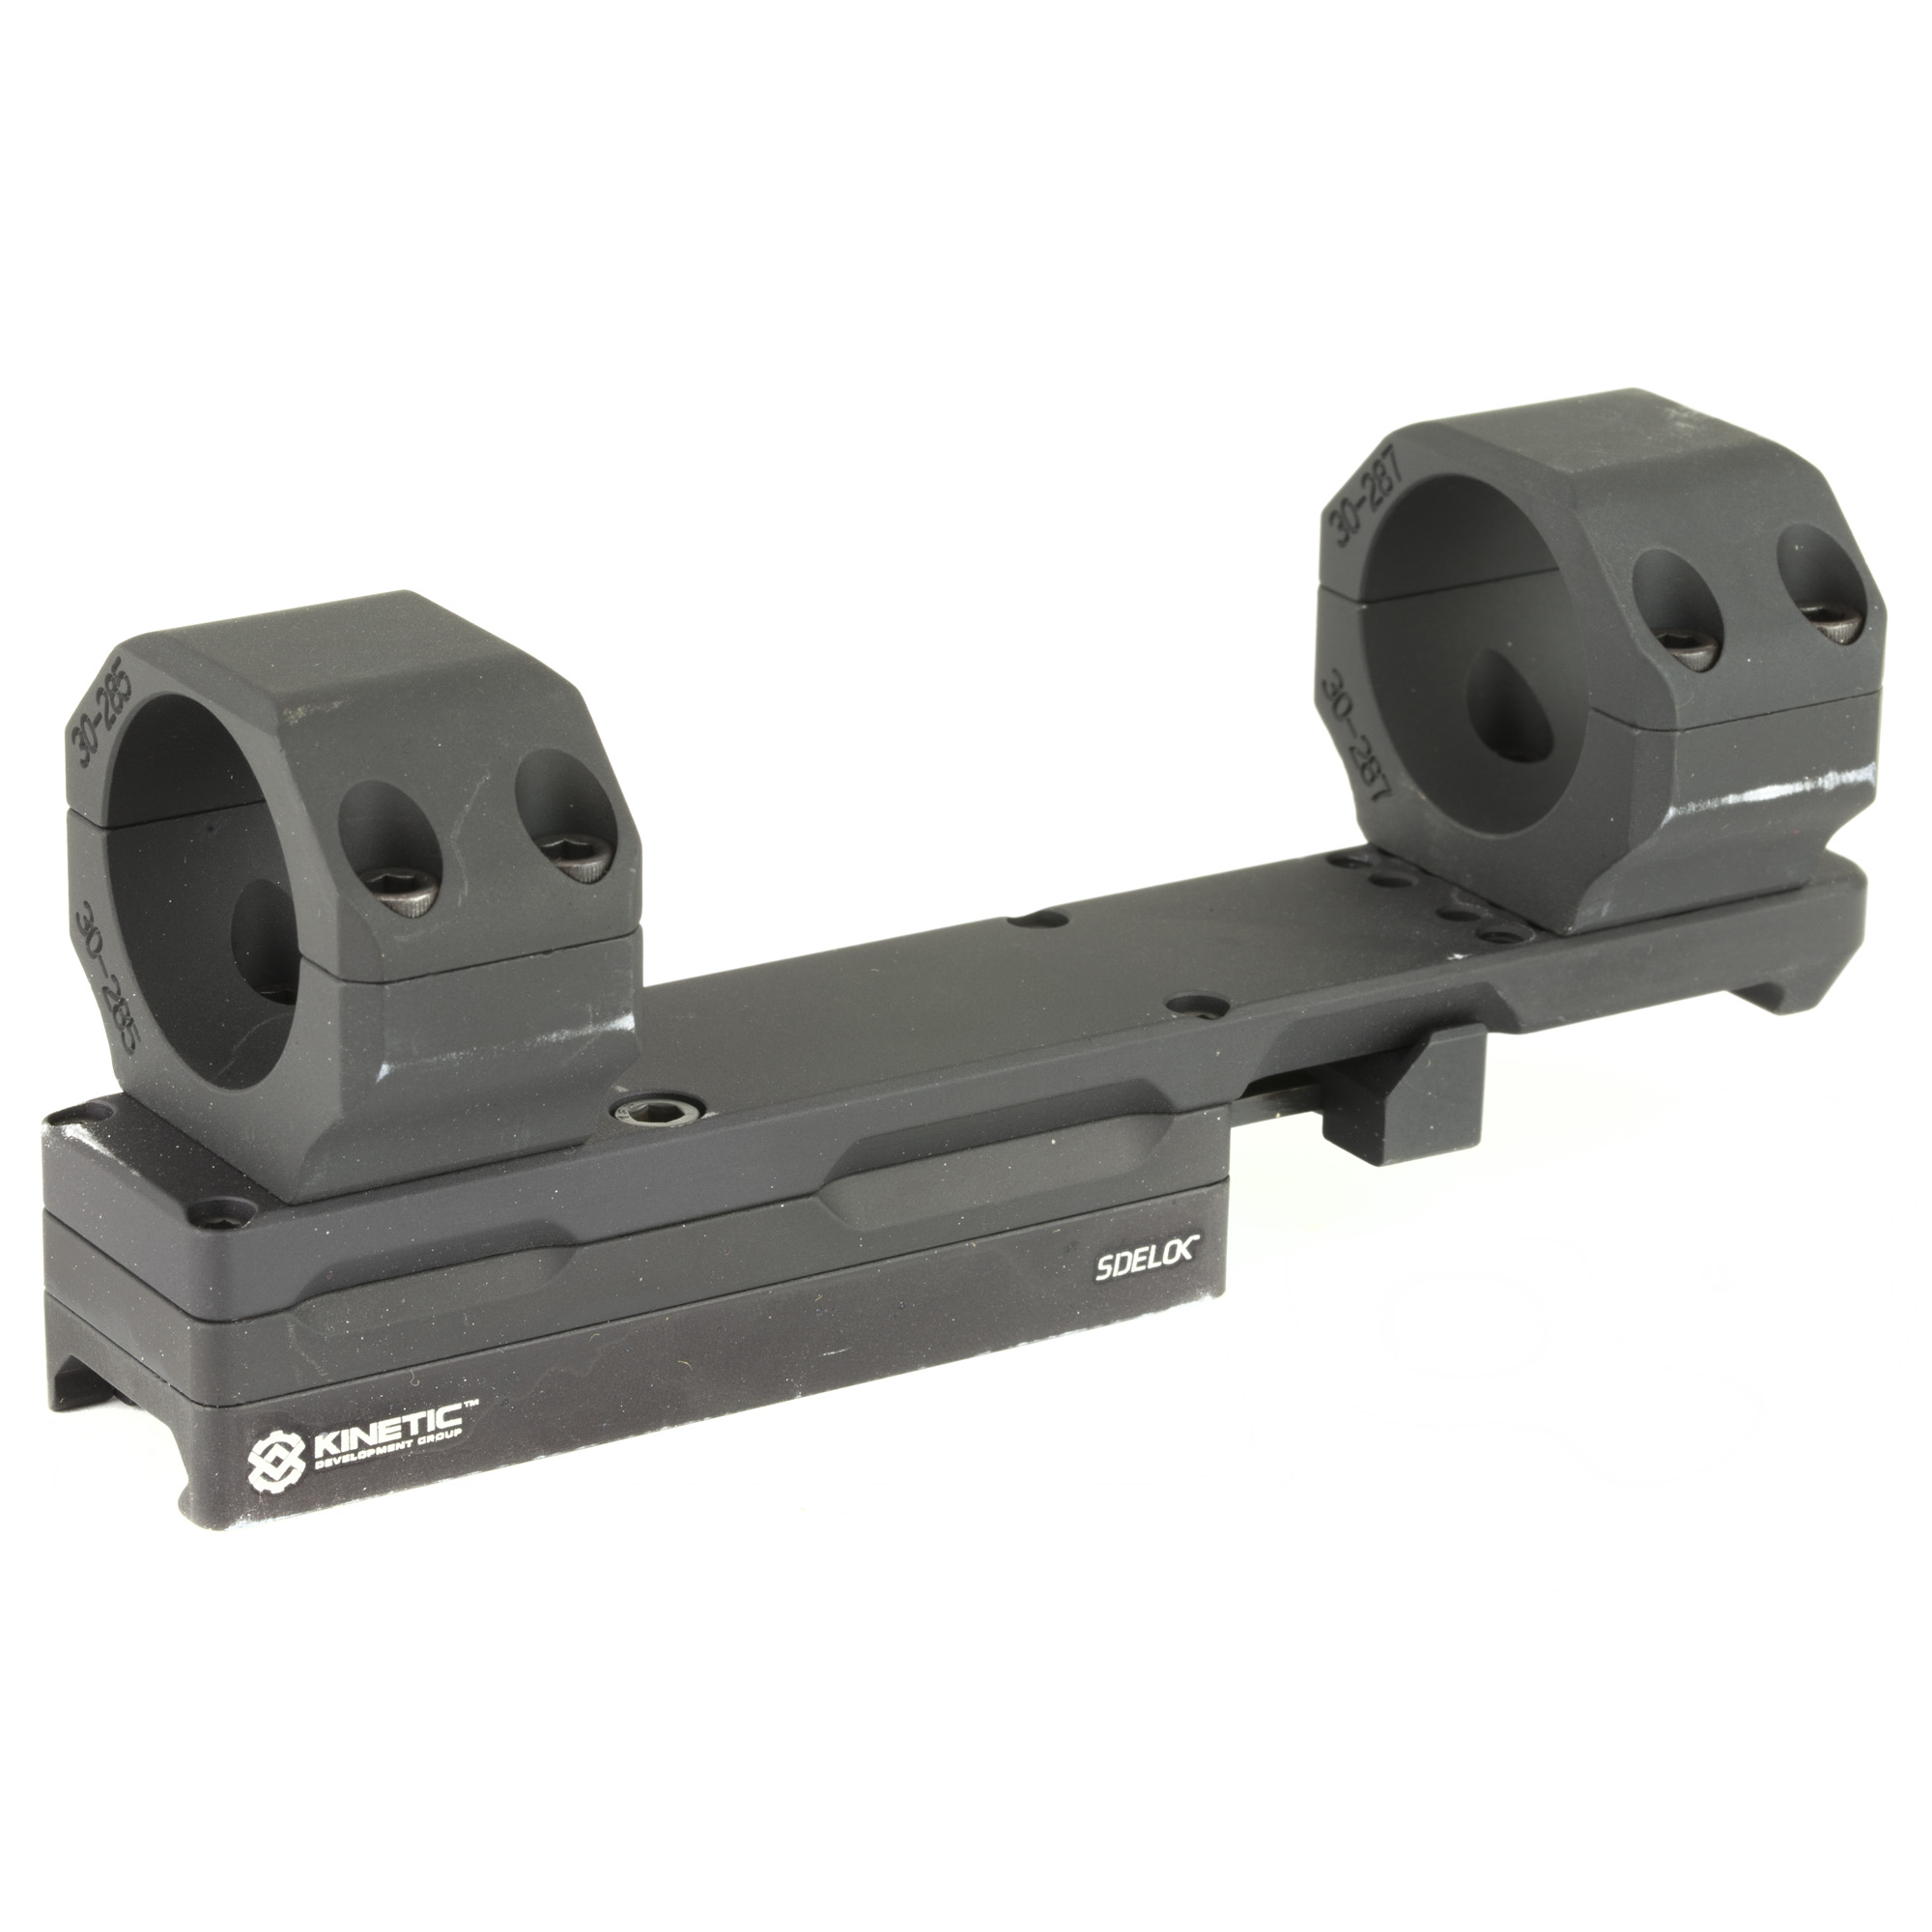 """The new KDG Modular Optic Mount is based off the proven Sidelok family of quick detach optic mounts"""" and features the same user-friendly"""" tool less design. KDG set out to design a Sidelok mount for all common"""" tube-style optics that will offer more user-configurable options than what is currently available from competing QD mounts. The mount is offered with a user removable cantilever bar"""" in which the rings securely mount. This bar runs parallel to the weapon's bore"""" and is ideal for all semi and fully automatic carbines"""" rifles and DM style firearms. The matched front and rear rings are CNC machined"""" and wire EDM cut to be as precisely concentric as possible. The upper and lower ring remain matched for the duration of its production"""" and feature witness marks for assembly in the form of recessed dots. This allows the user to match the proper ring to its base"""" and ensure the mount is as truly aligned as possible. The rings themselves can be adjusted forward or back to the user's preference"""" to avoid interference with large front objective bells"""" turret adjustment knobs"""" and rear magnification adjustment collars. The rings themselves bolt into a track system to facilitate this adjustment. The same track system allows the user to purchase and install separate rings in the future"""" should they decide to change to an optic with a larger or smaller diameter tube. This feature will save the shooter or organization money"""" as the majority of cost is in the base of the unit."""